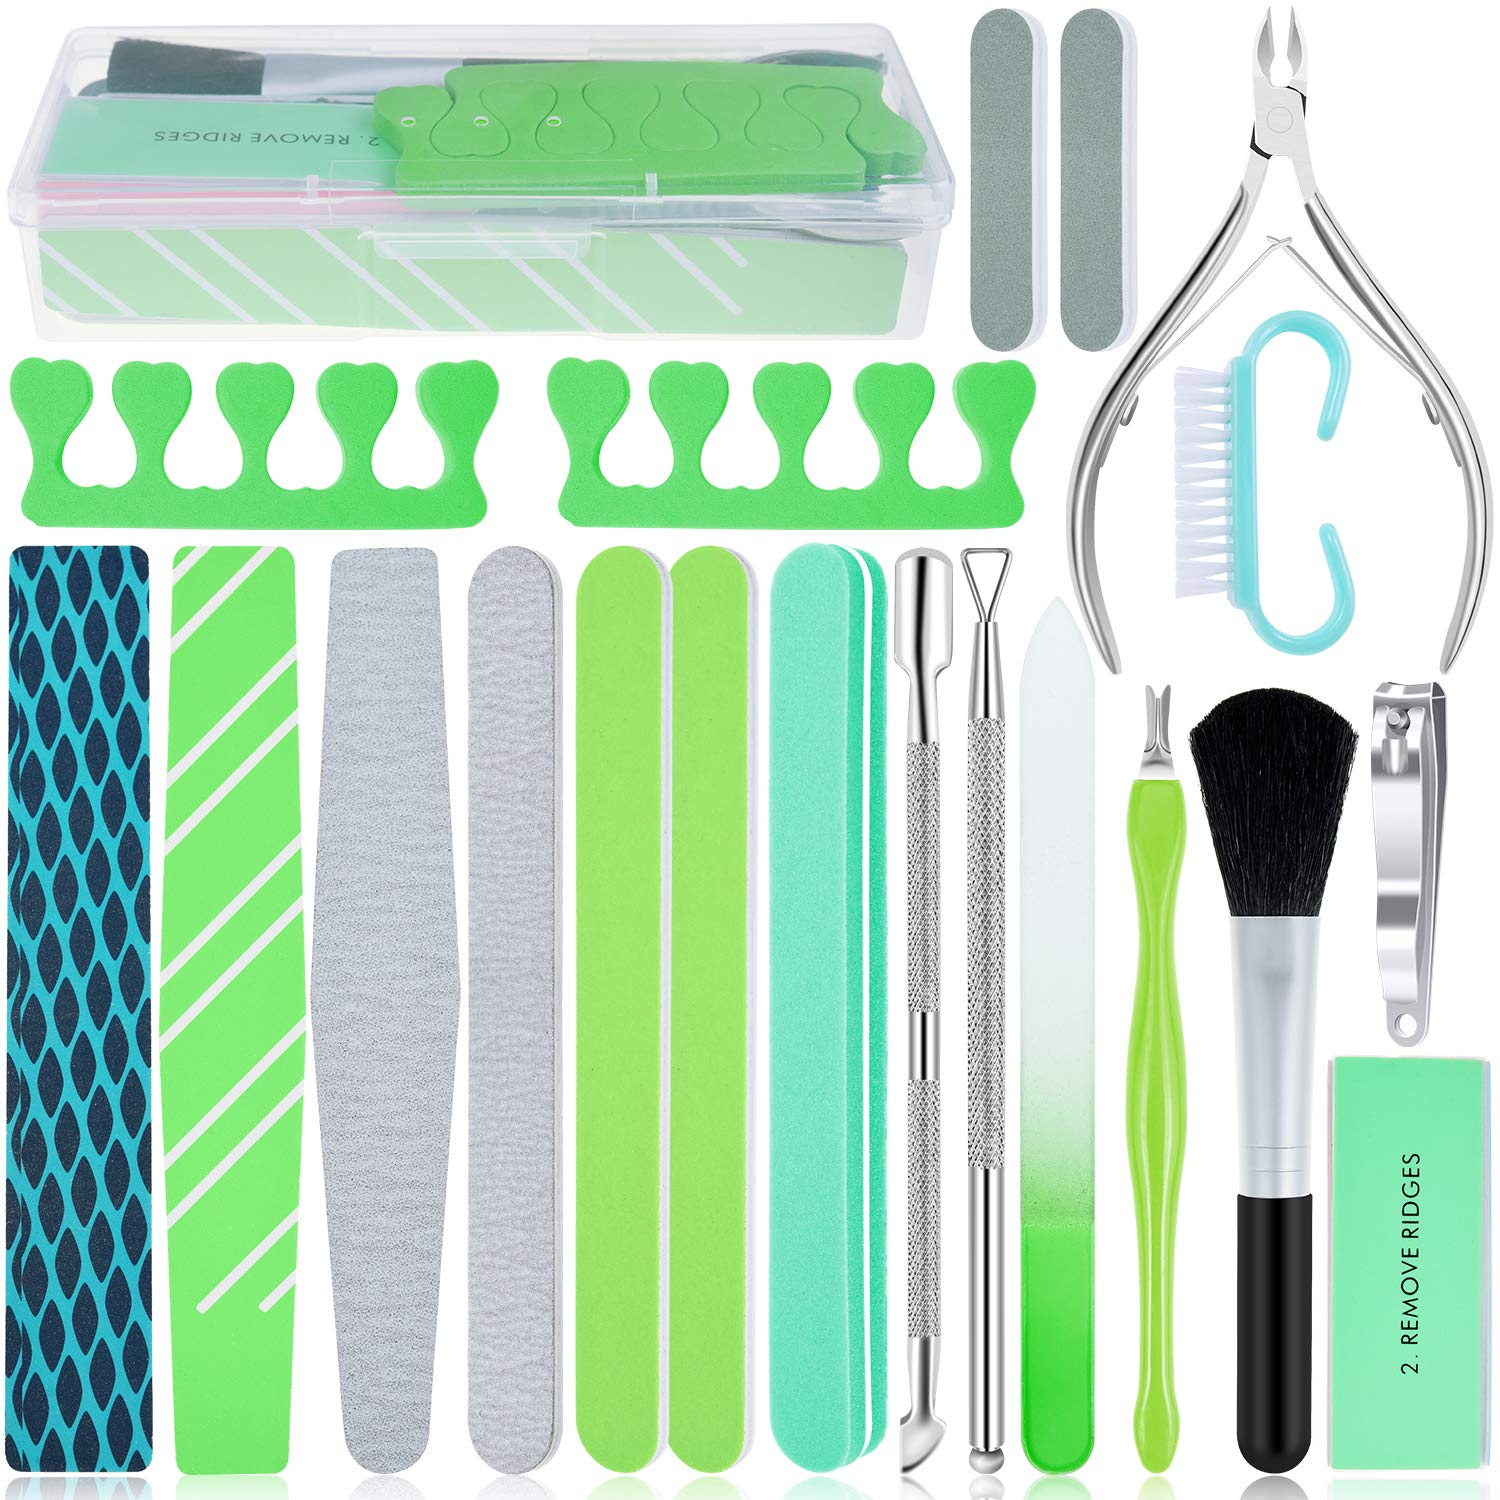 20 in 1 Nail File Set, EAONE Professional Manicure Kit Pedicure Tools Nail Art Tools with Nail Files and Buffers Cuticle Nipper Cuticle Pusher Nail Cutter for Hand and Foot Nail Salon, Case Packaged: Beauty